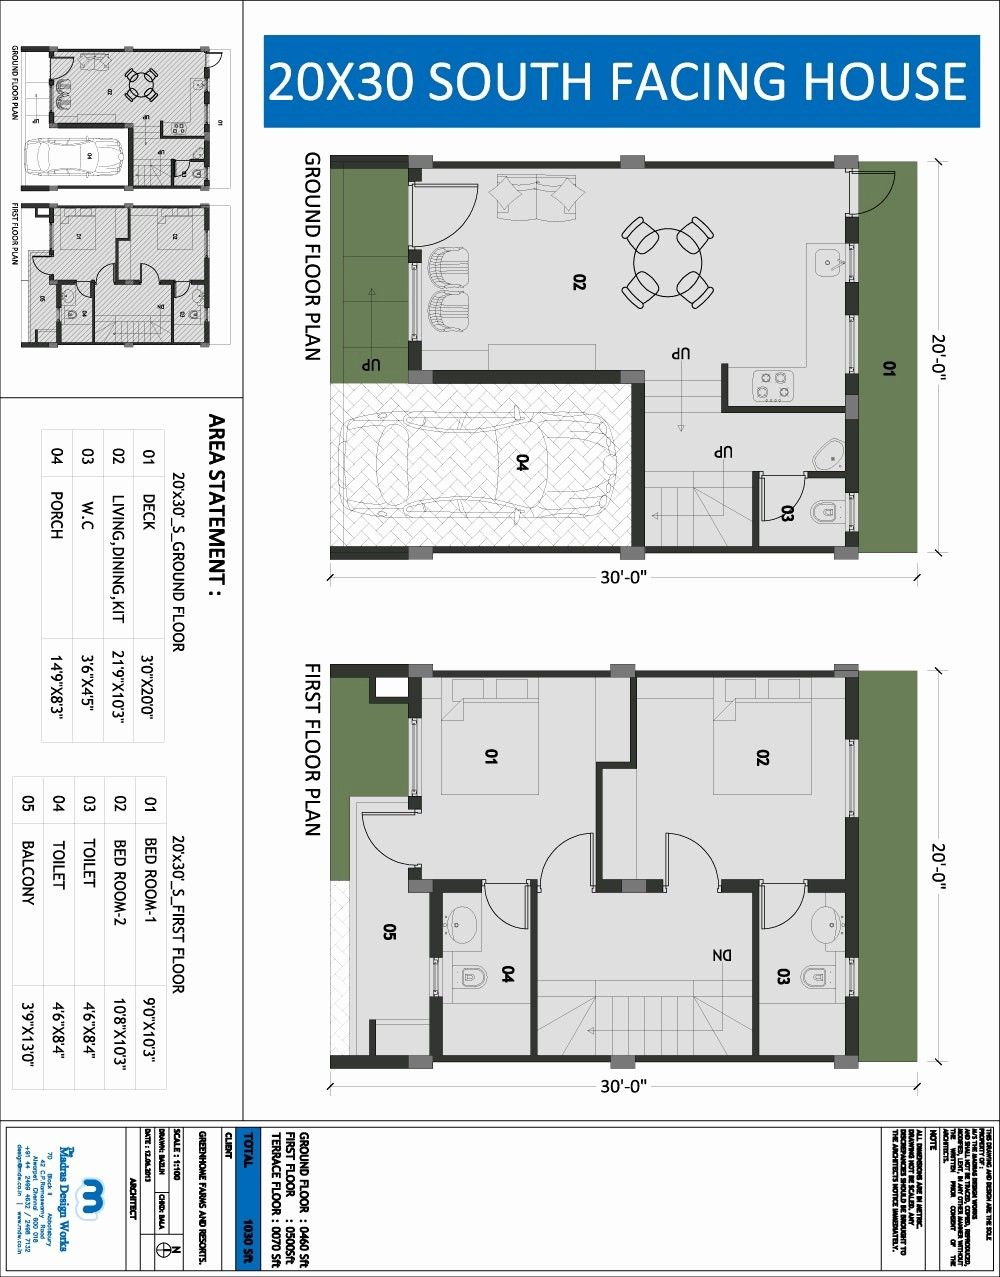 20 X 30 Square Feet House Plan Awesome South Facing Floor Beautiful 20x30 Home South Facing House 20x30 House Plans House Plans